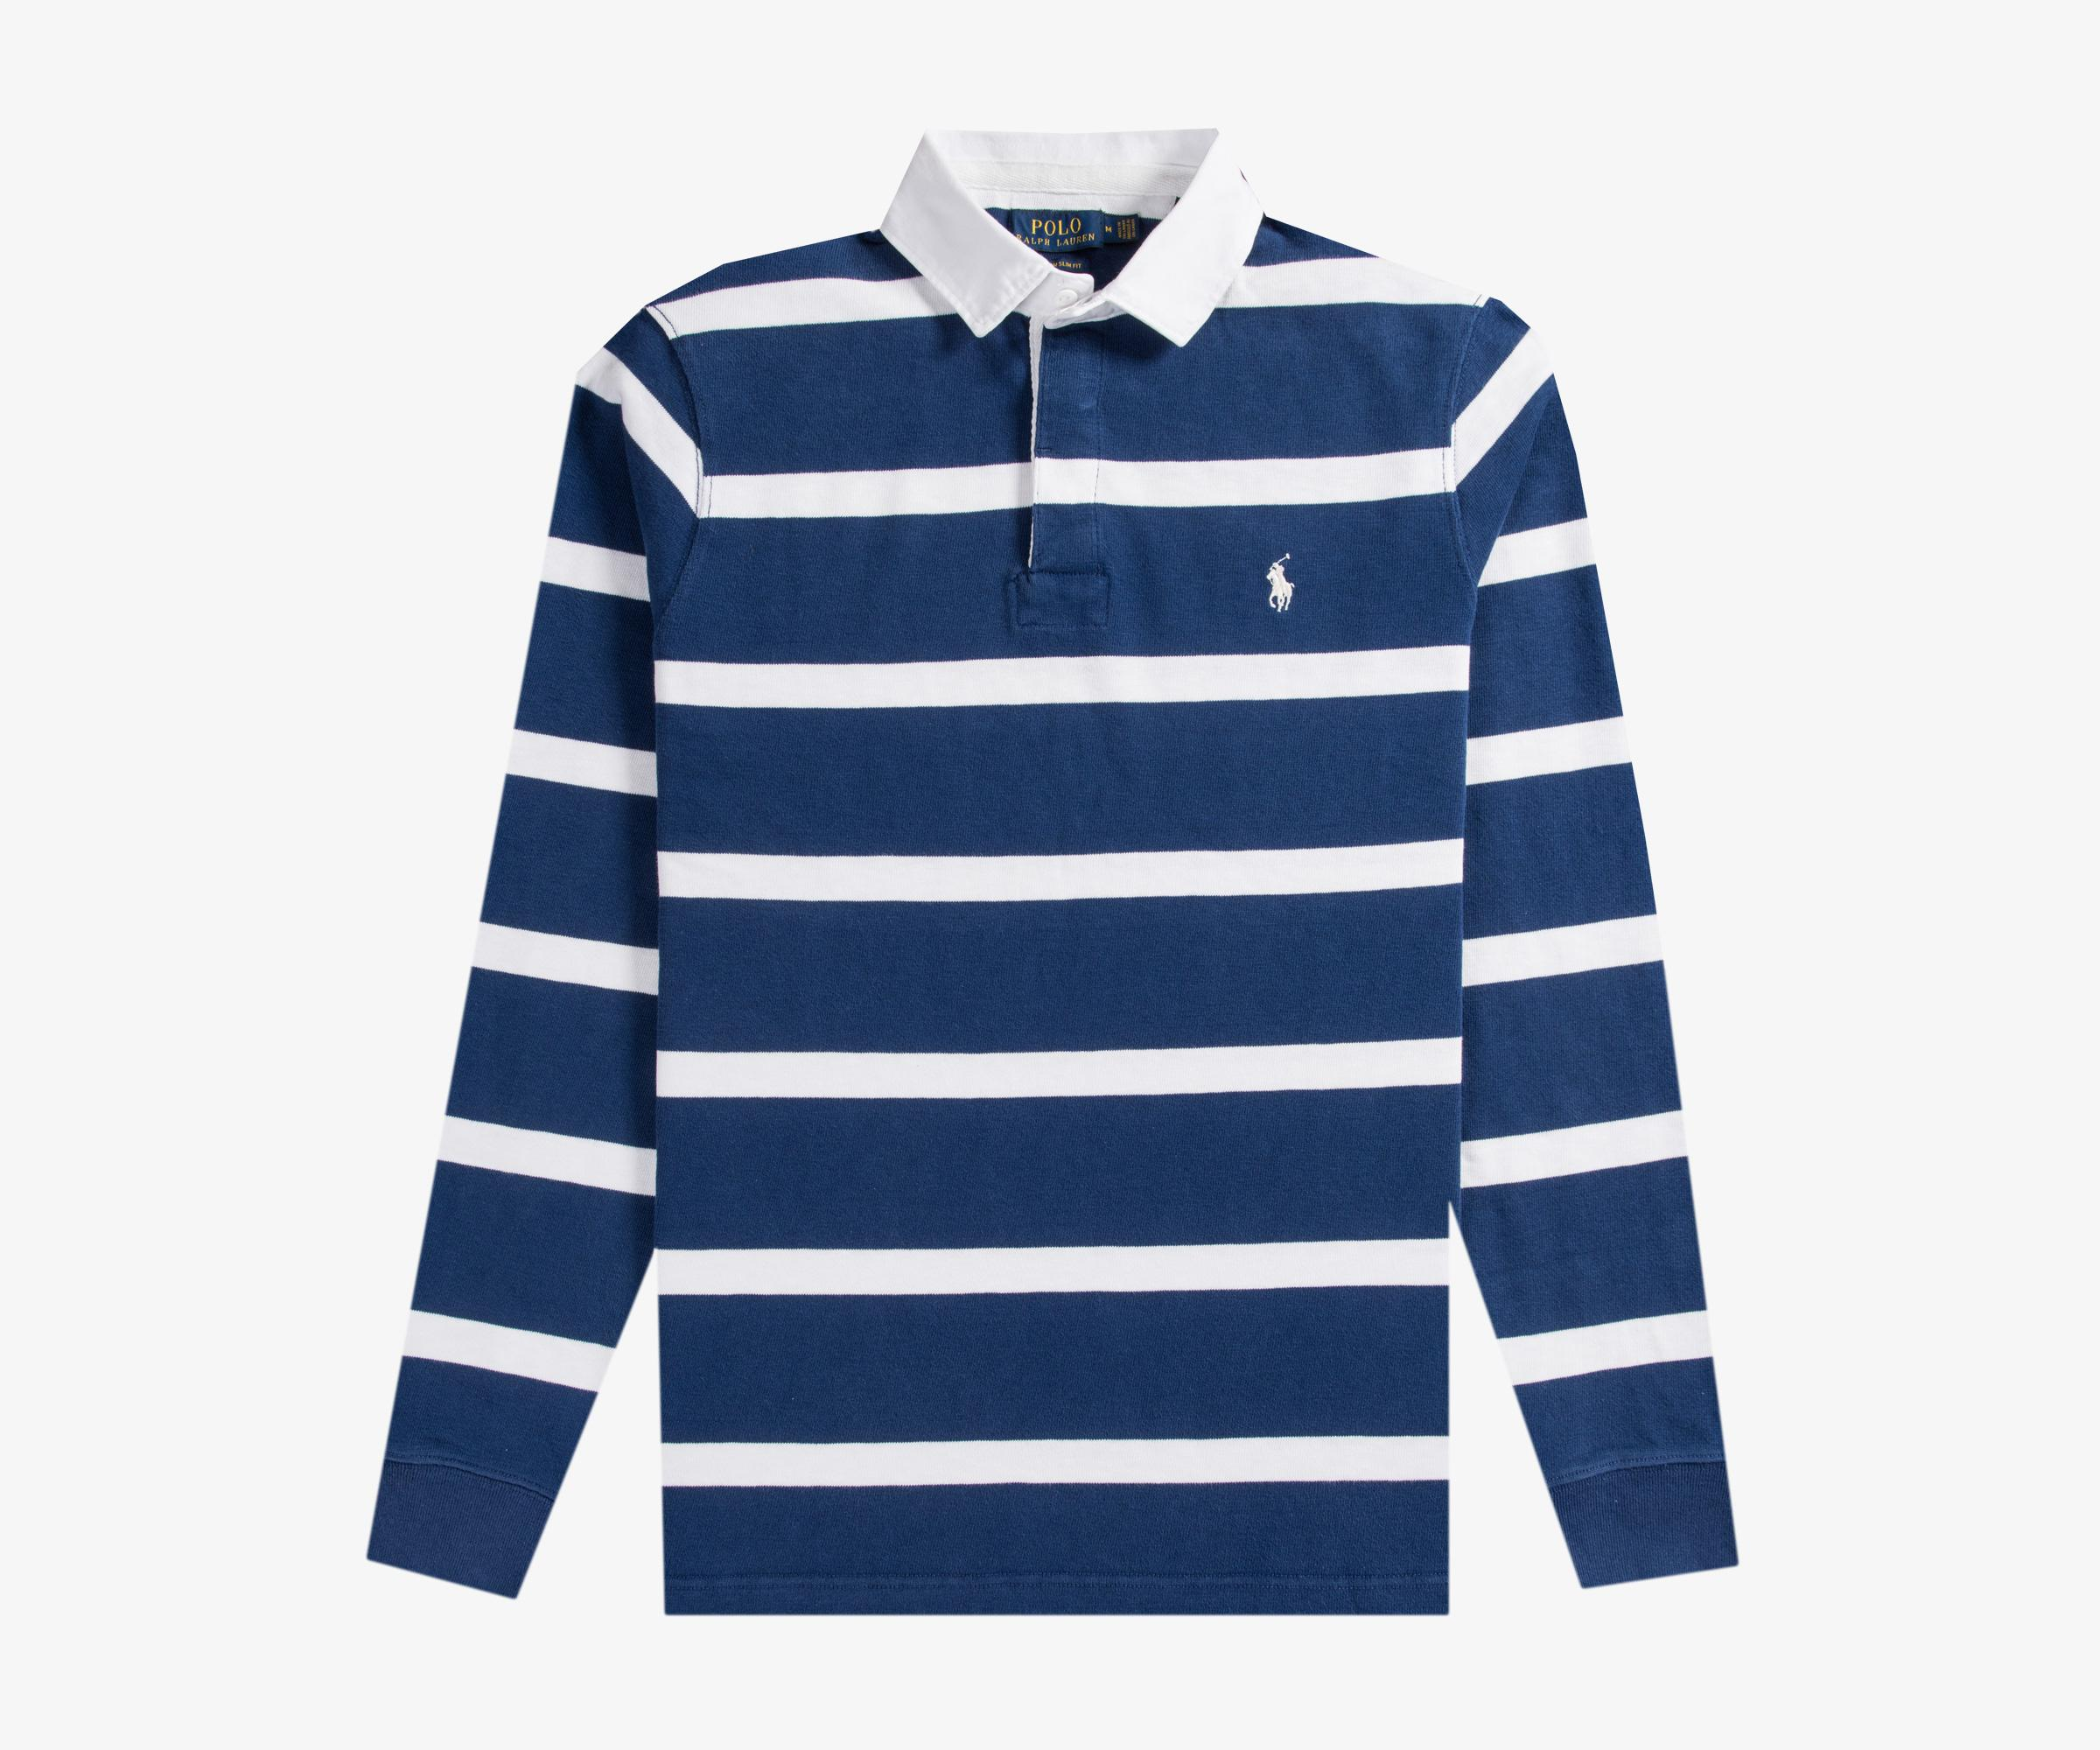 6d567a93ca2 Polo Ralph Lauren Bar Stripe Rugby Shirt Navy/white in Blue for Men ...